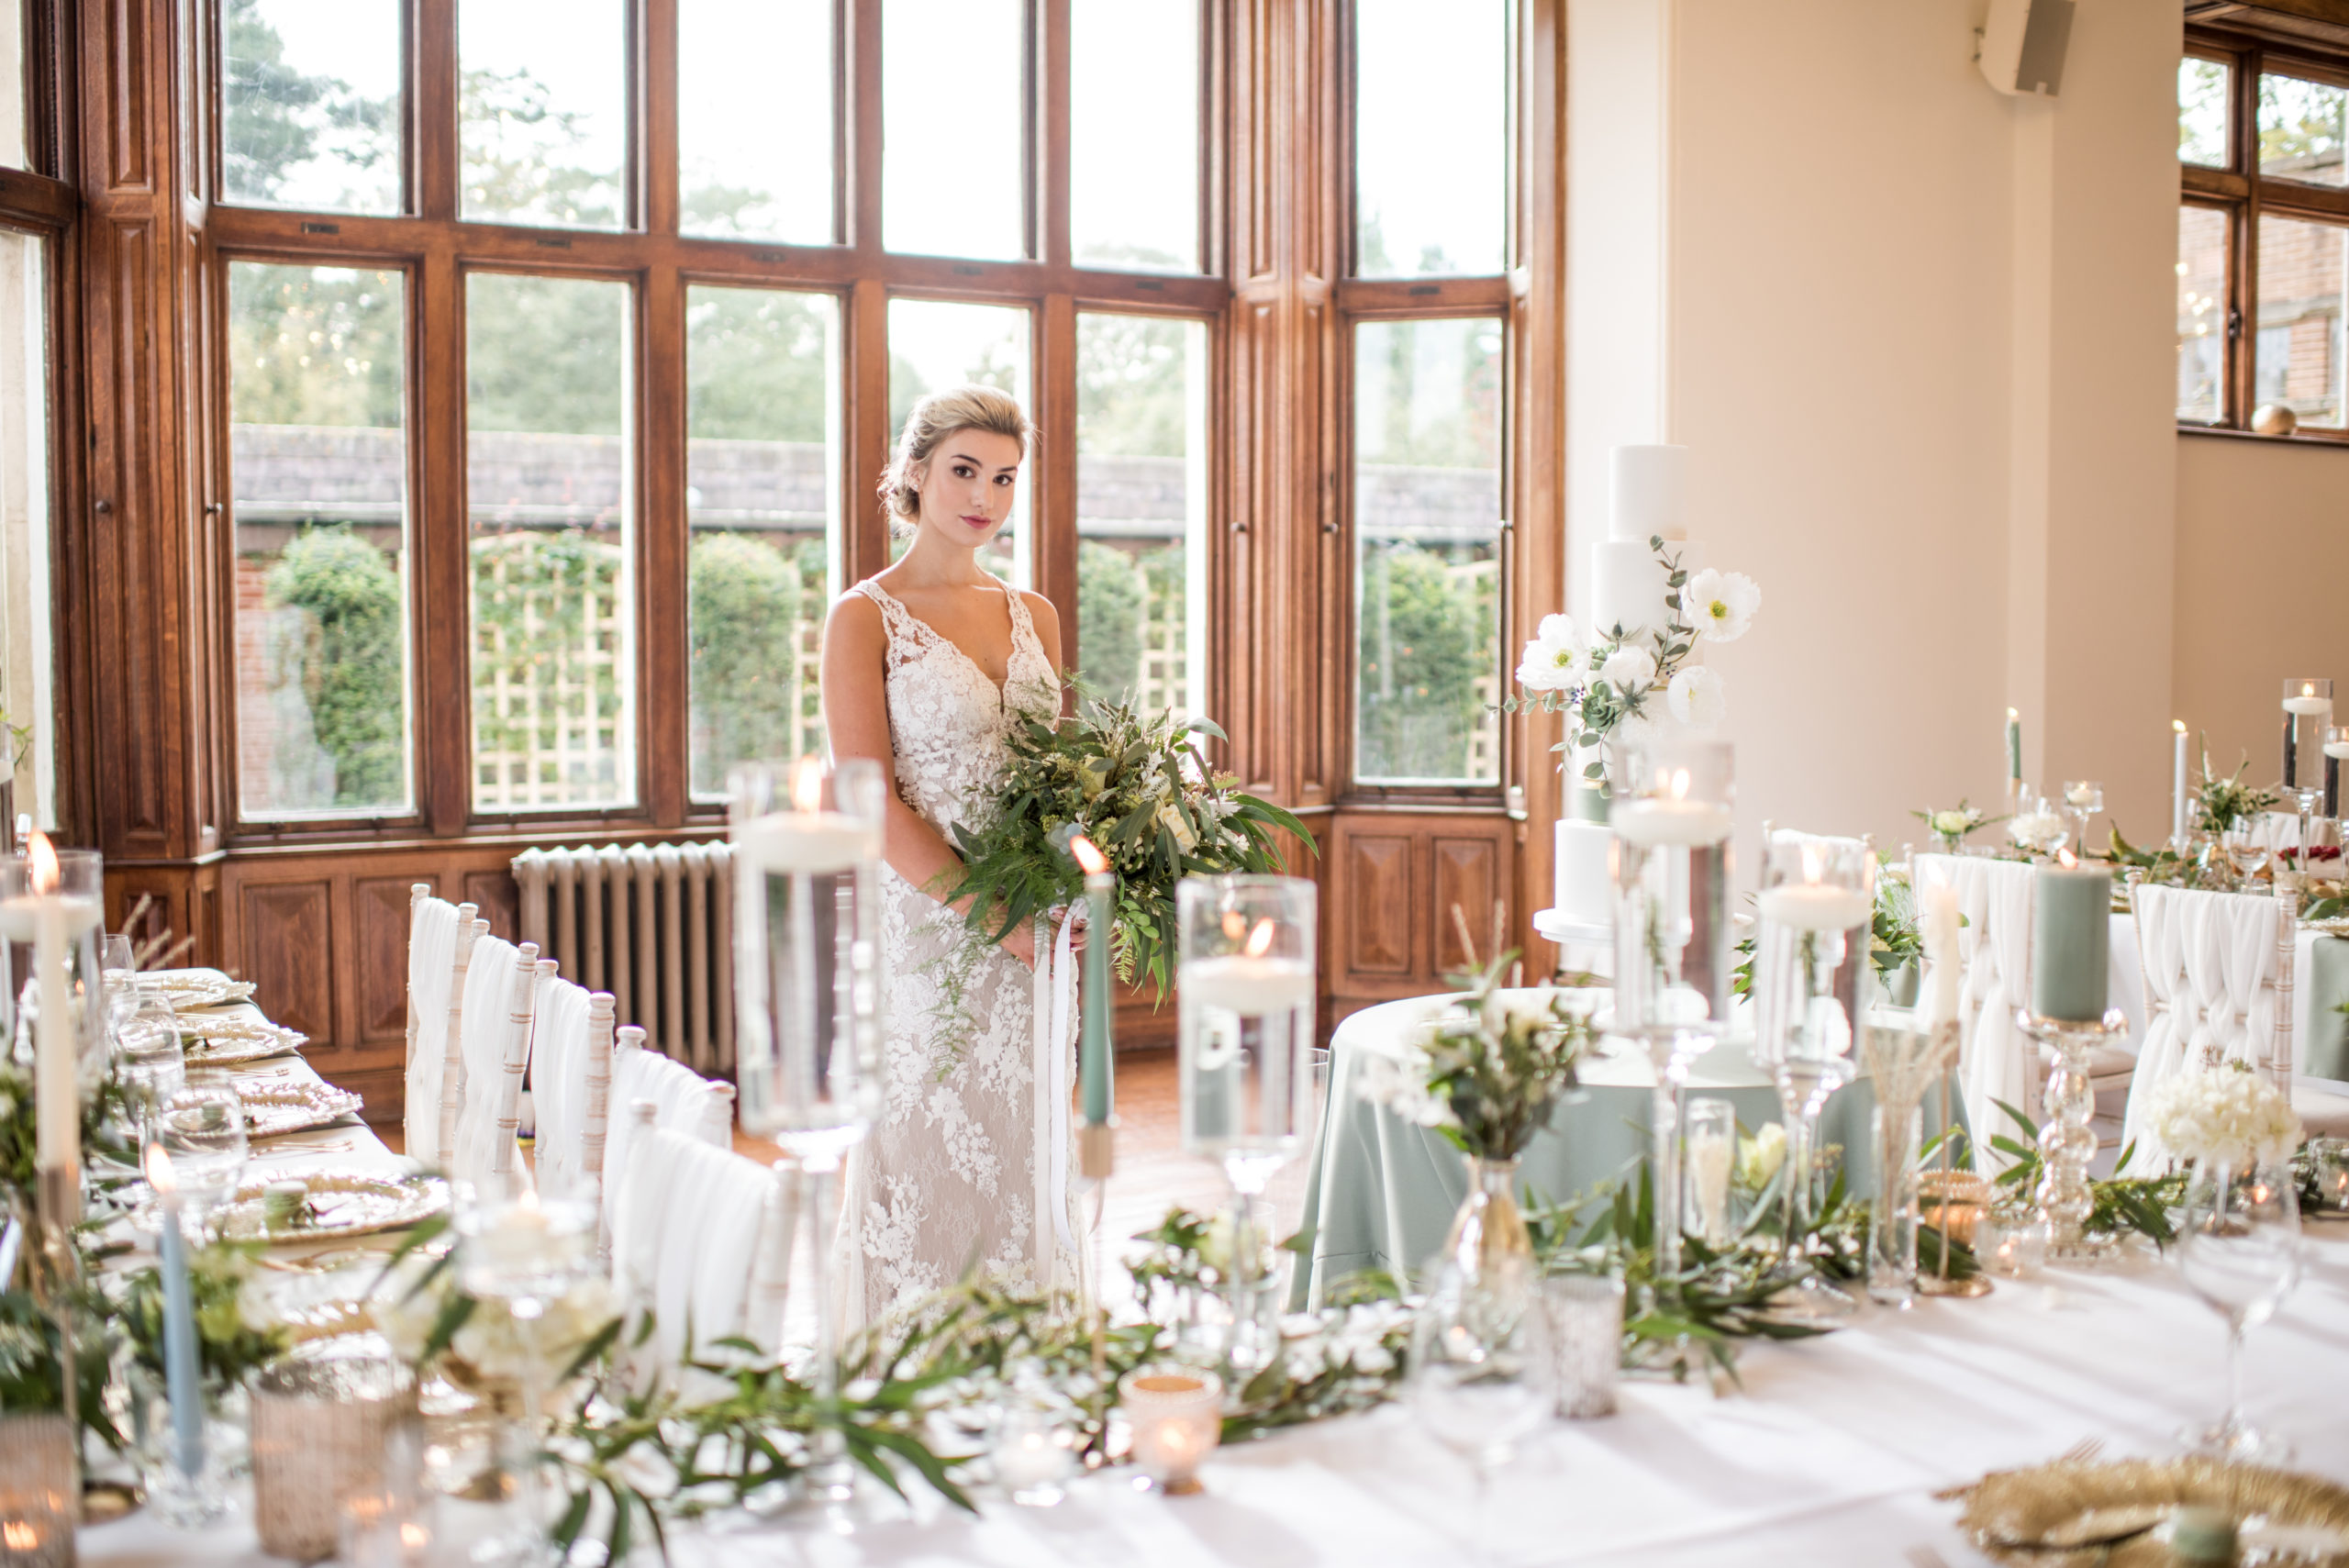 Ambience Venue Styling | Wedding & Event Styling